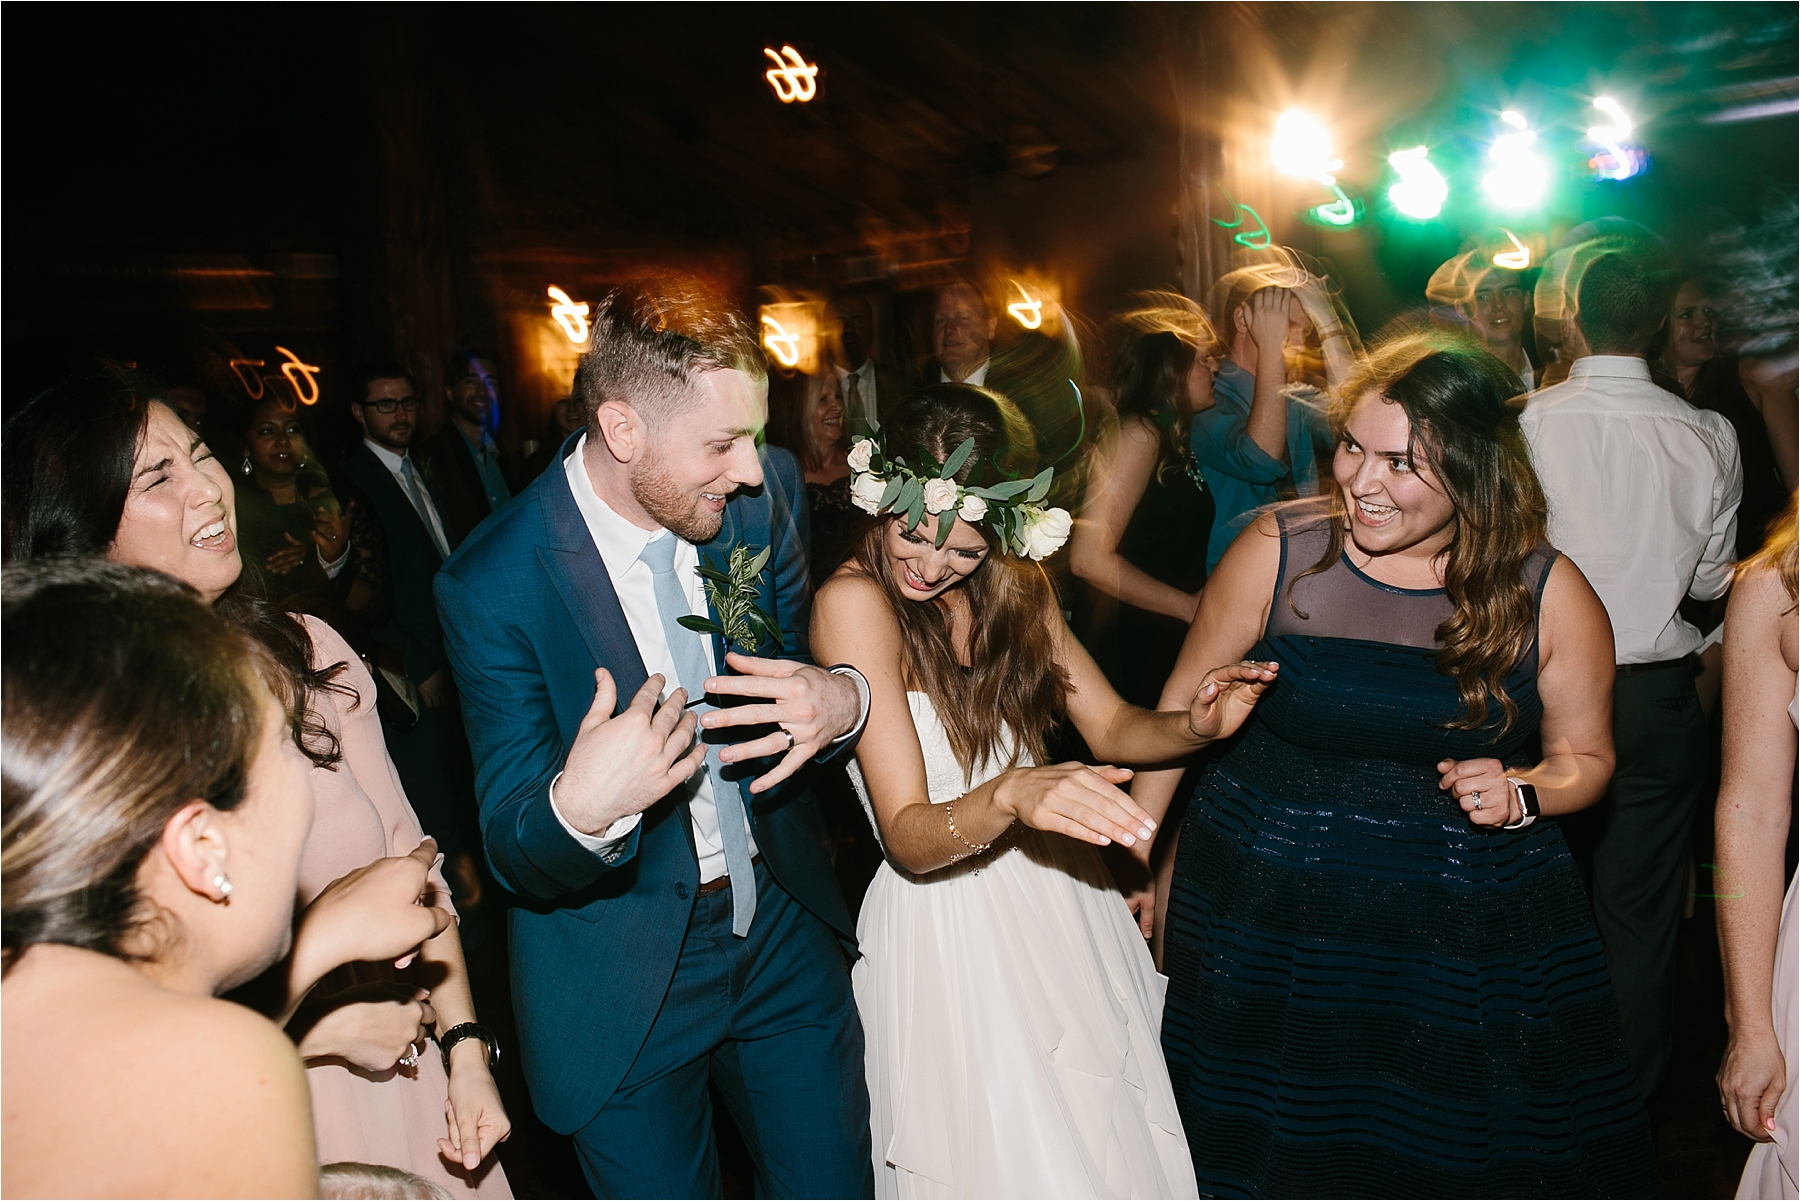 Lauren + Matt __ an intimate, emotional, blush pink, navy blue, and greenery toned wedding accents at the Brooks at Weatherford by North Texas Wedding Photographer Rachel Meagan Photography161